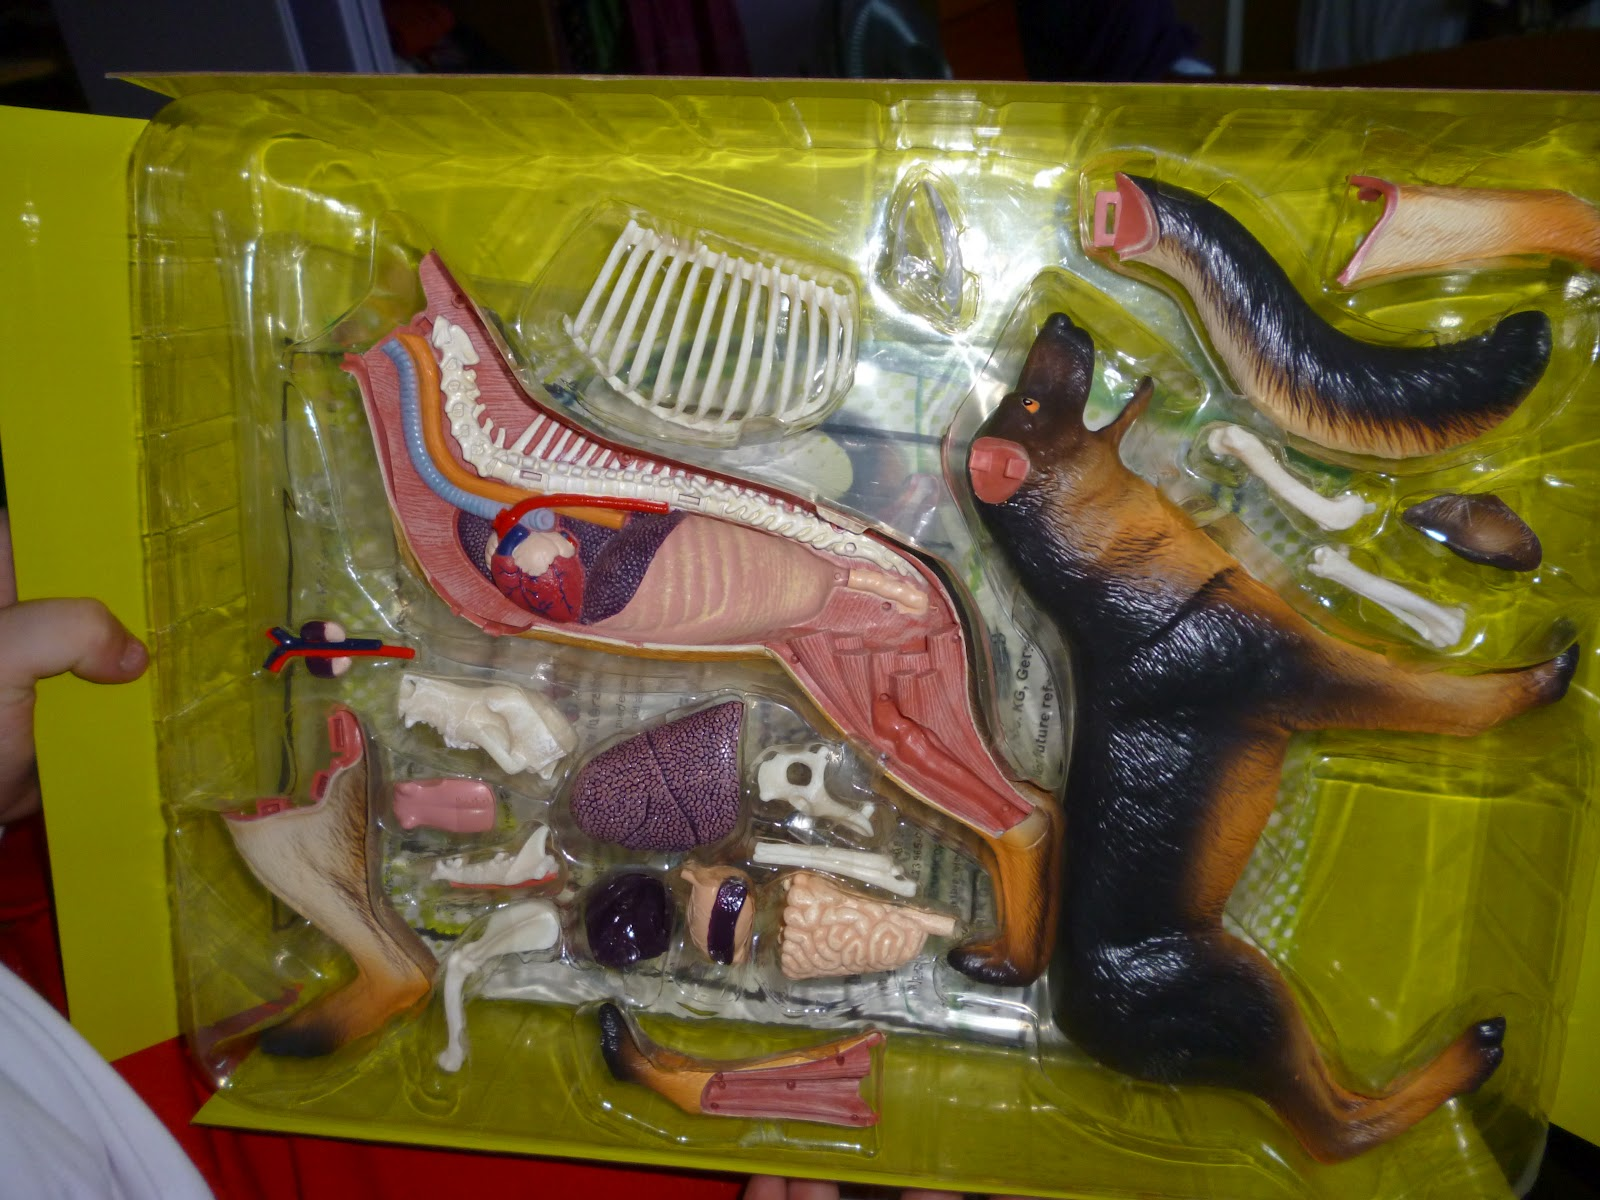 Madhouse Family Reviews: Revell X-ray Dog Anatomy Model review